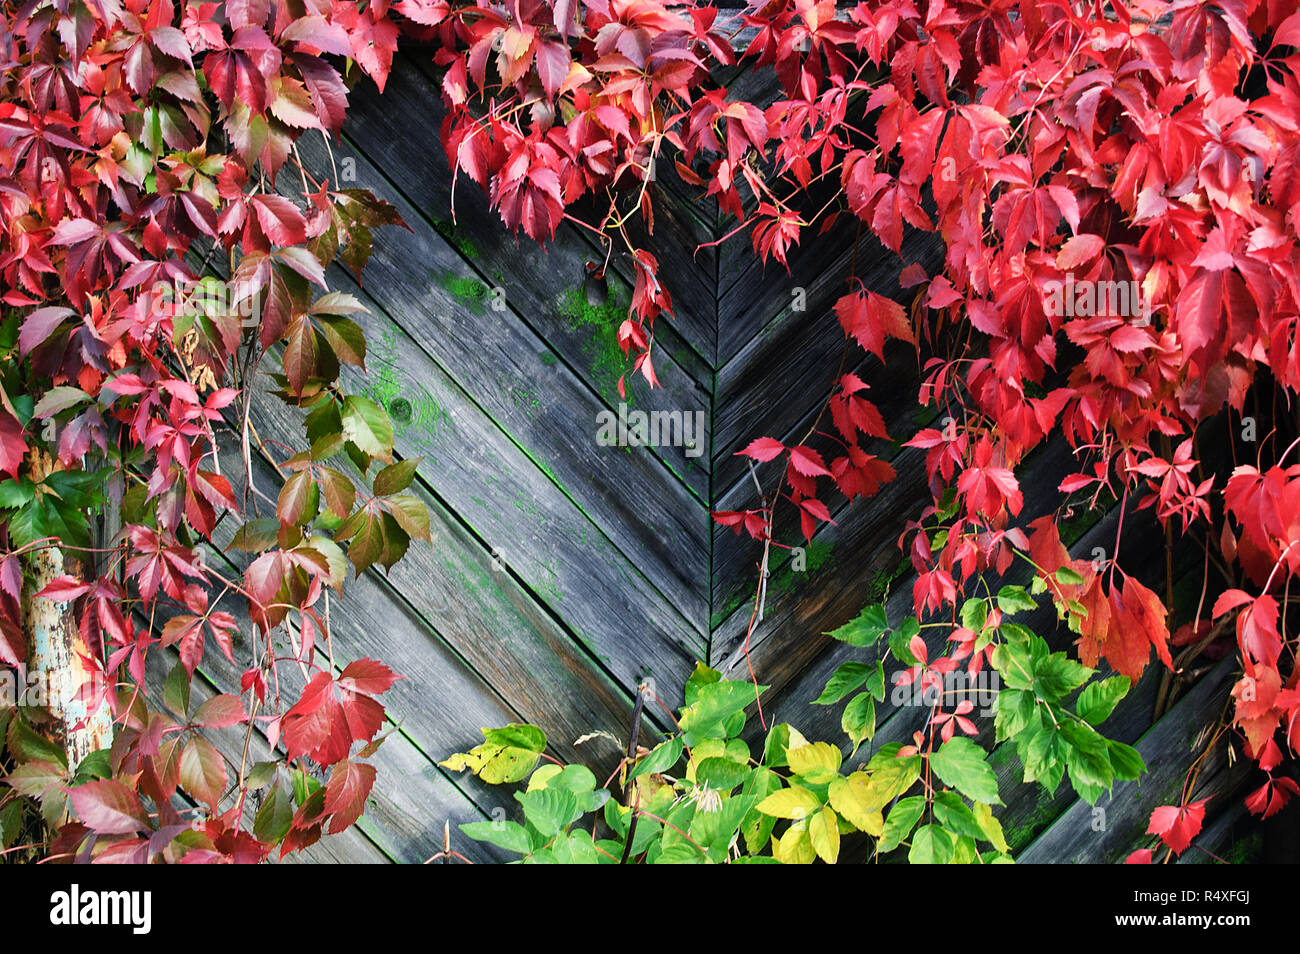 A plant of loach in the fall on a wooden fence. - Stock Image